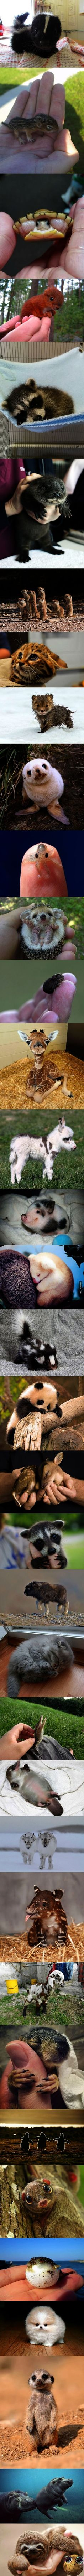 No way... Cutest Animals Ever Tumblr :D